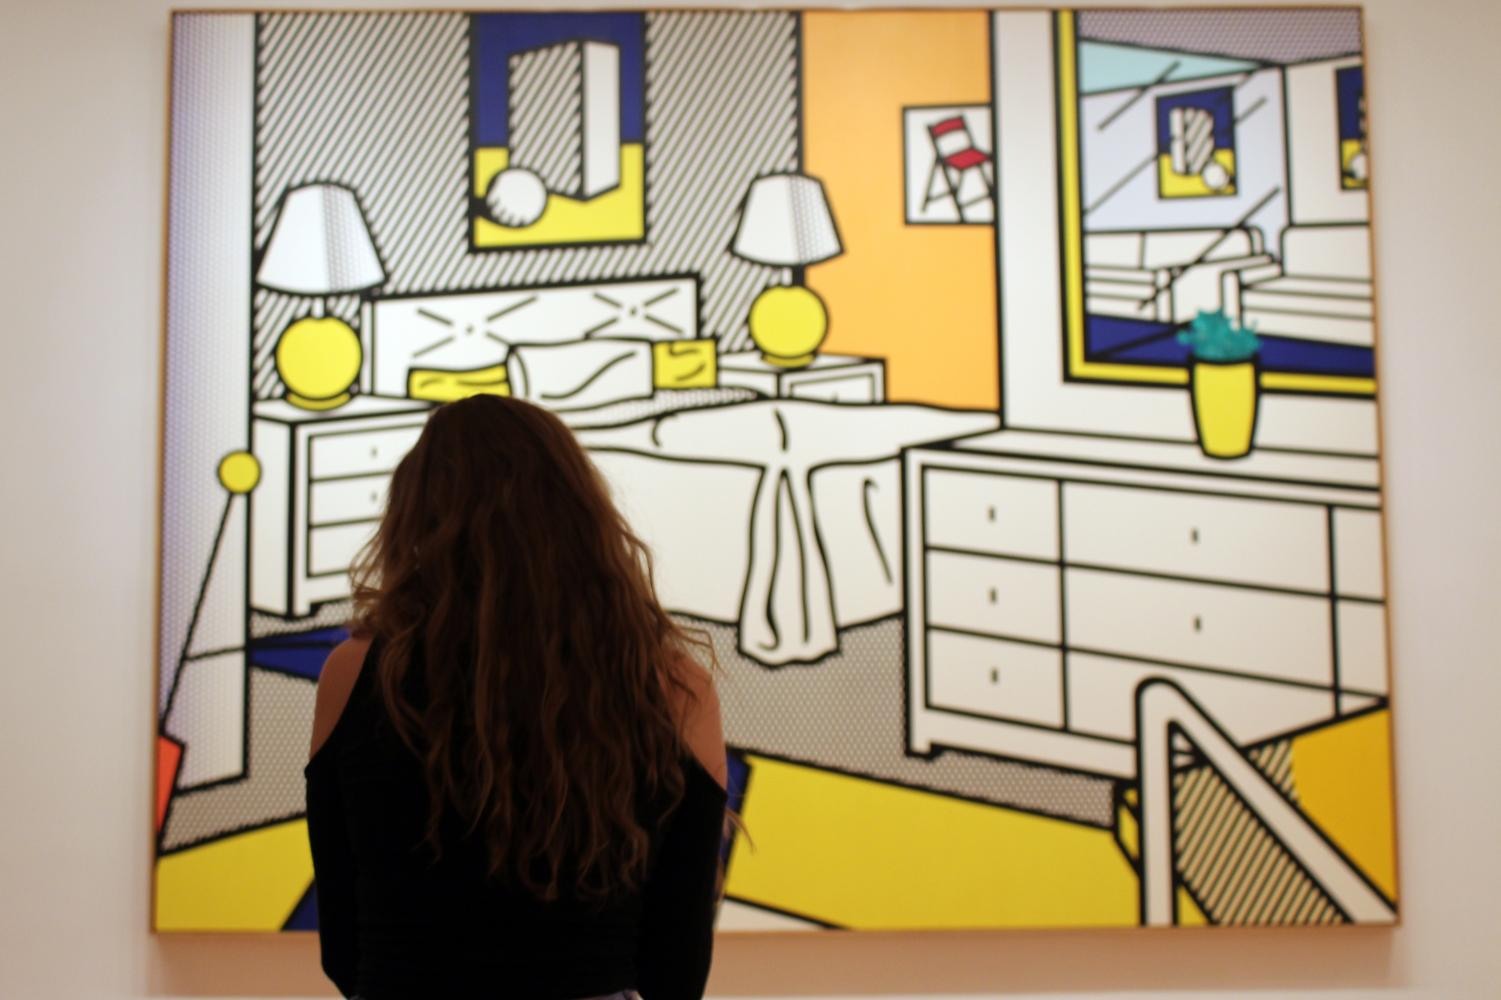 Junior Cailey Ruderman of Marlboro views a 1992 Roy Lichtenstein piece titled